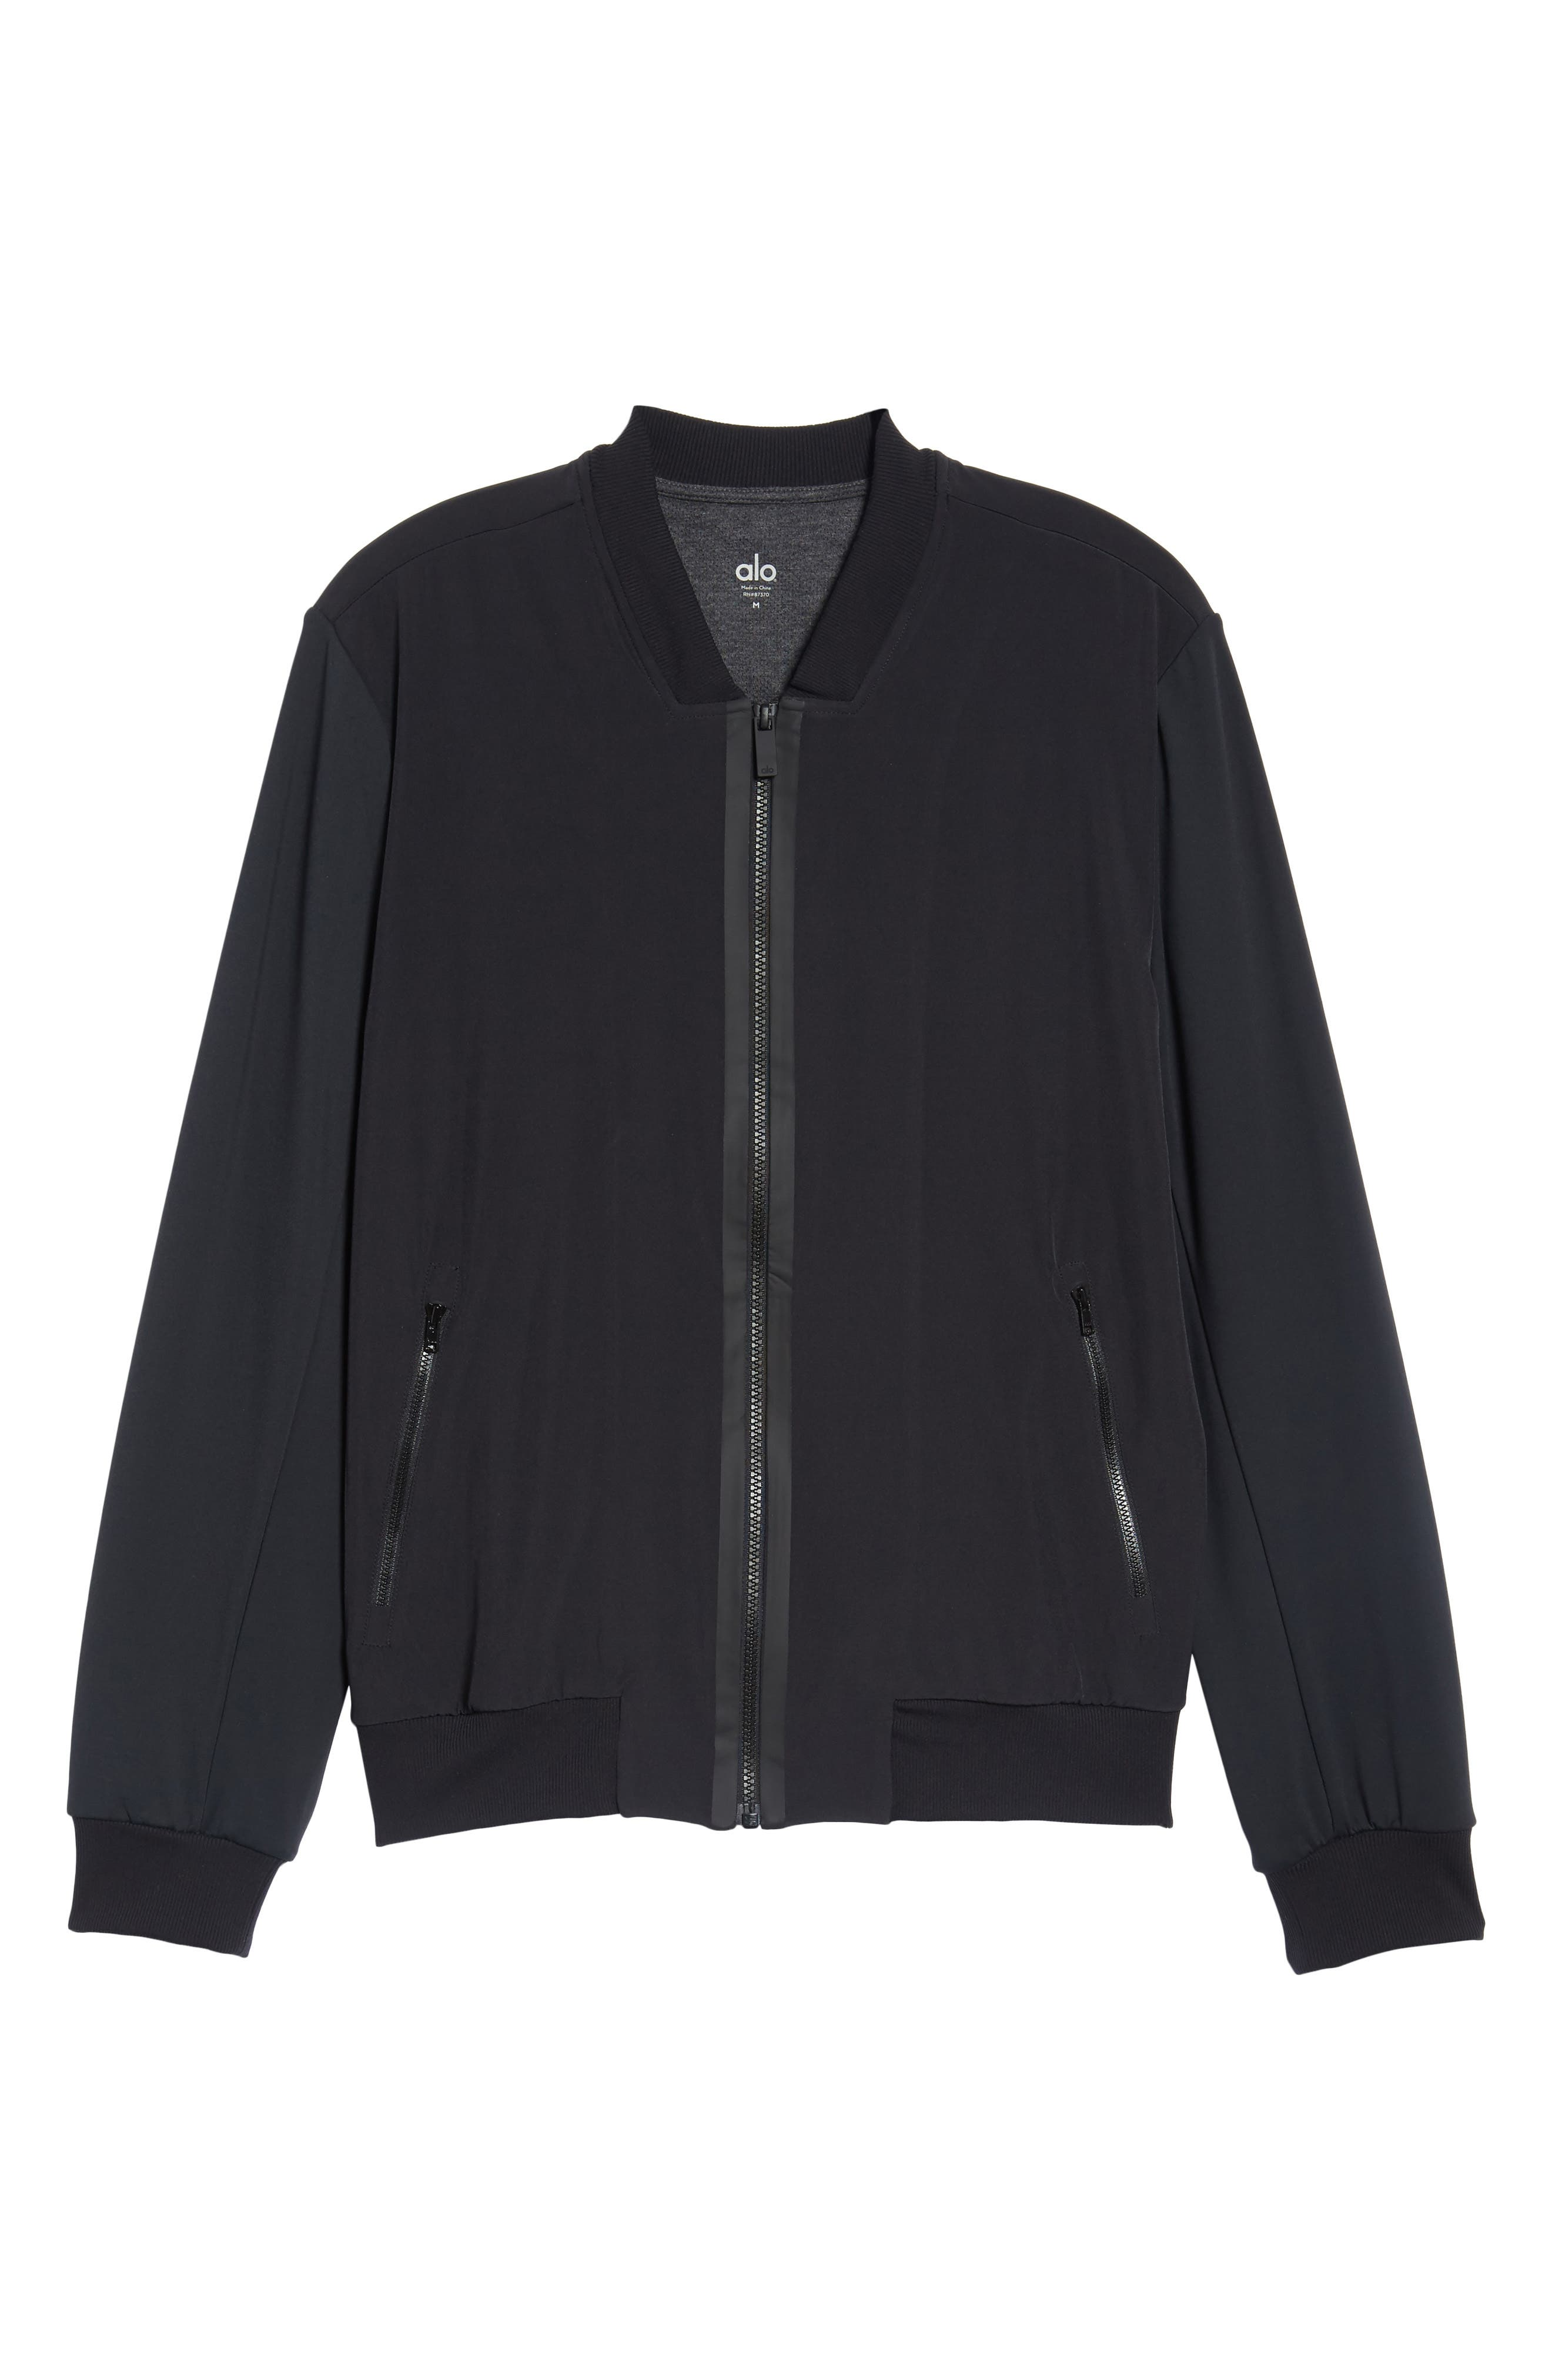 Inversion Relaxed Bomber Jacket,                             Alternate thumbnail 5, color,                             001